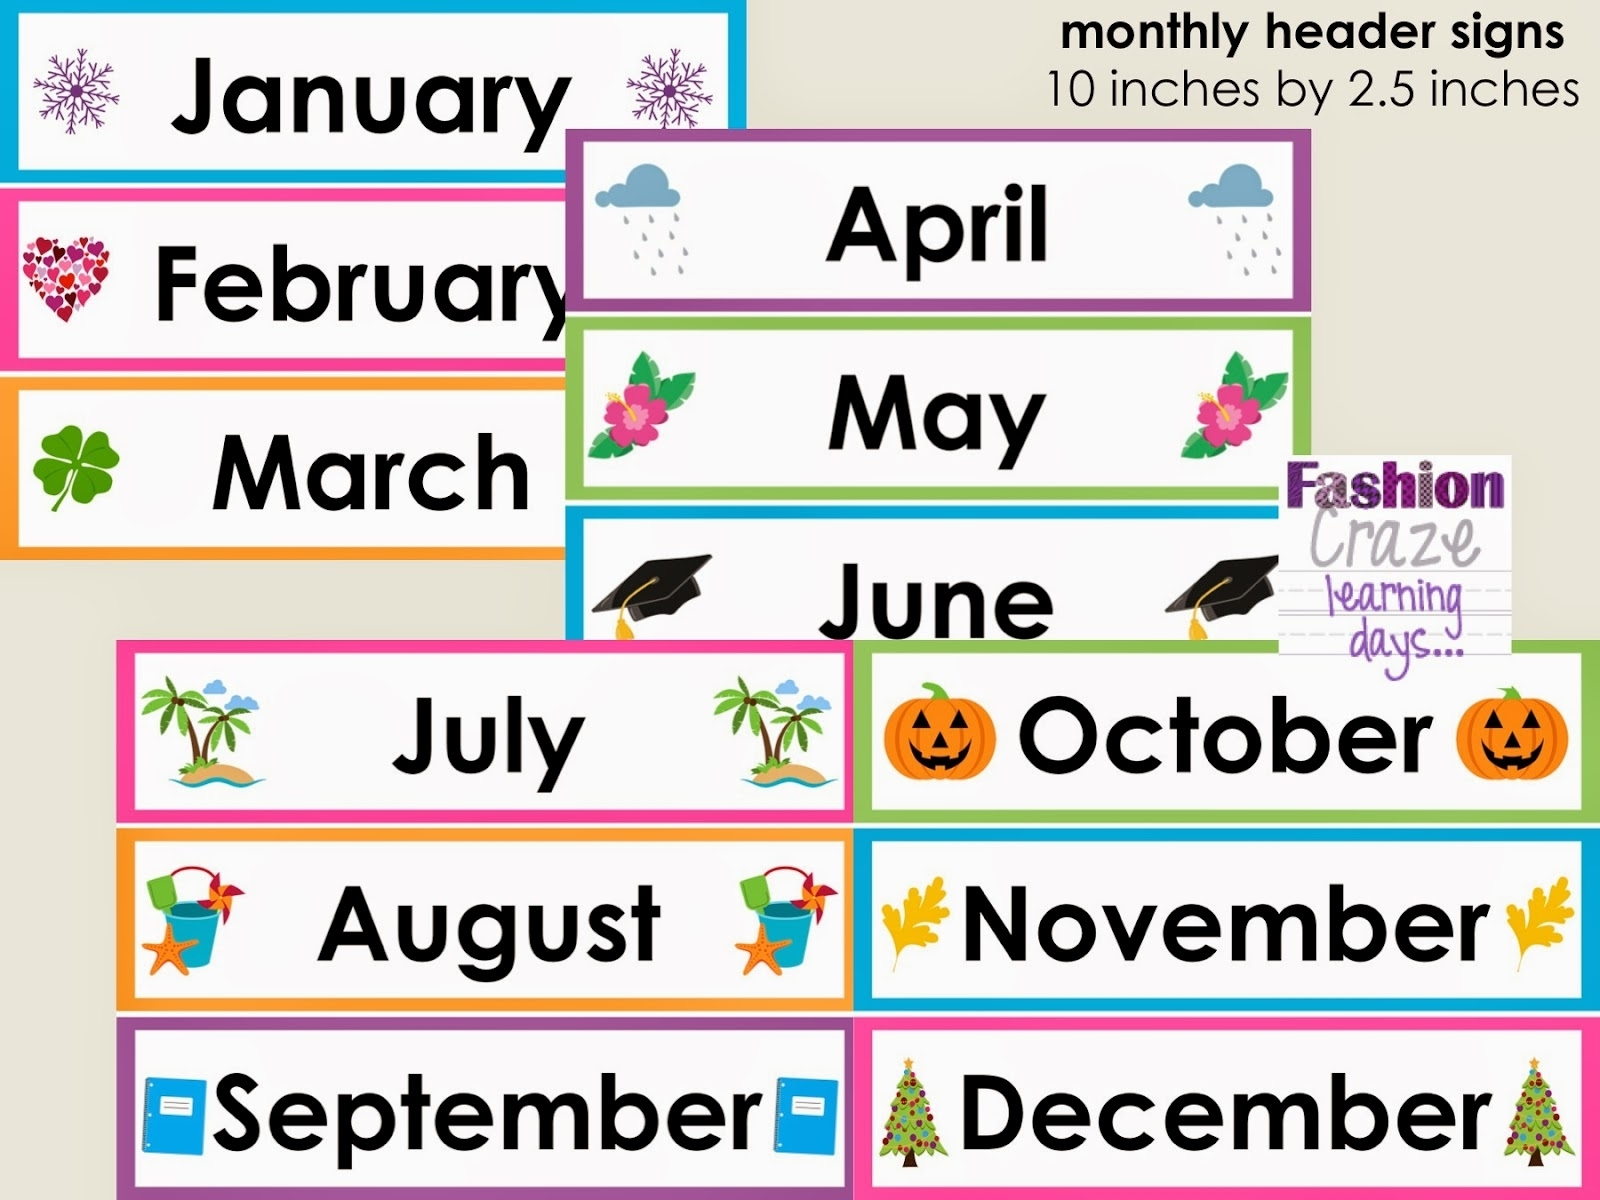 Free Calendar Headings Cliparts, Download Free Clip Art, Free Clip